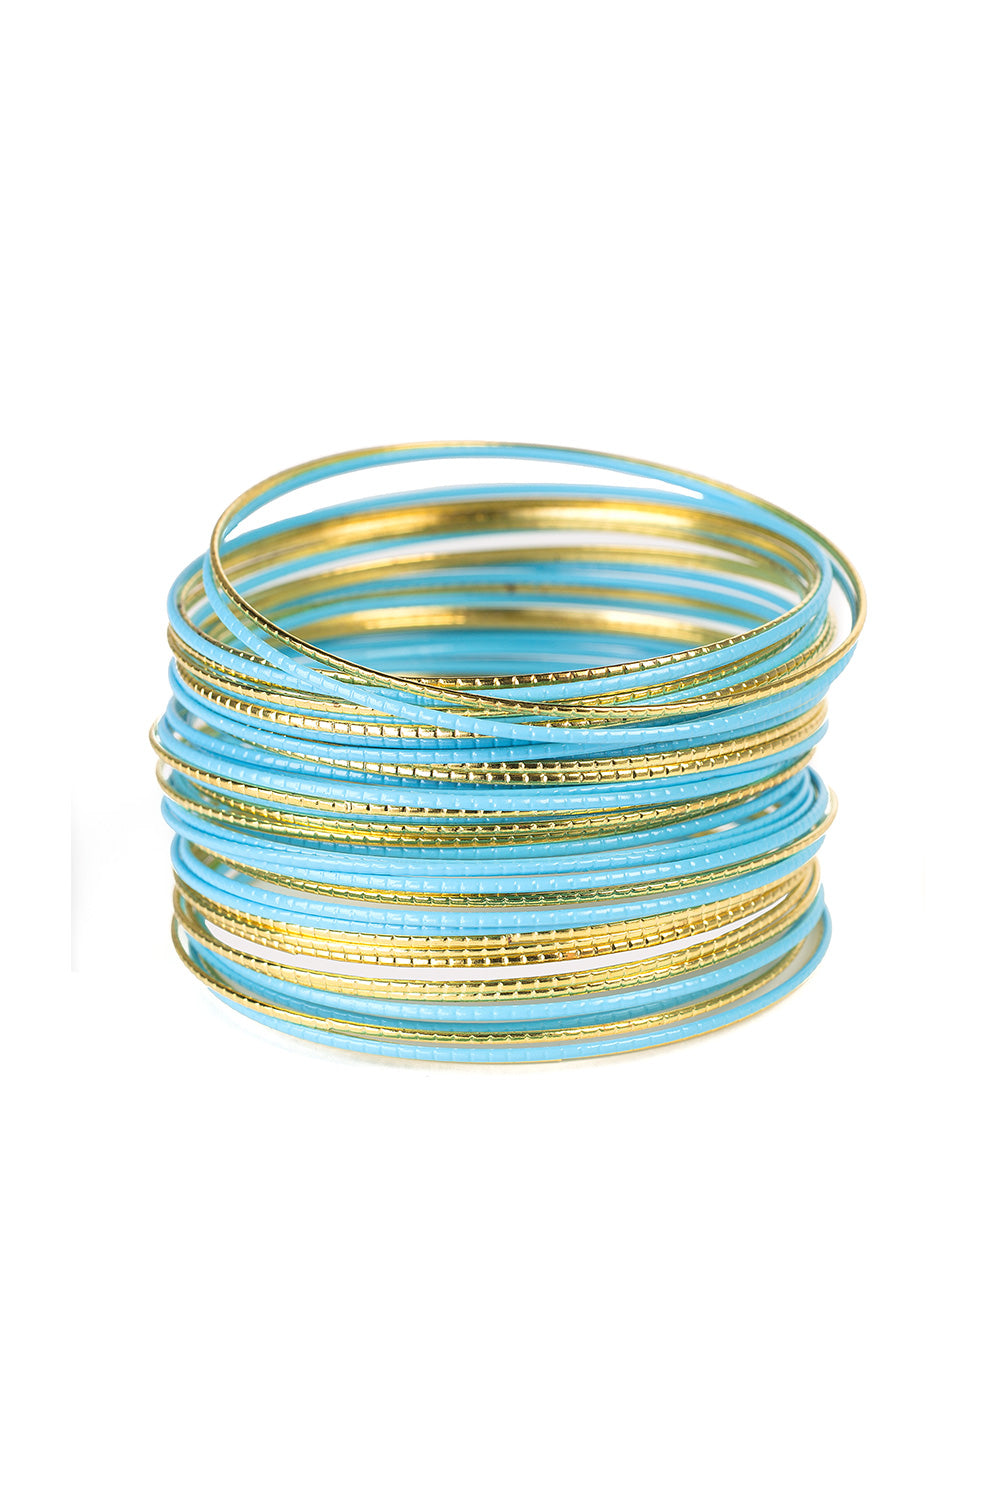 Type 1 Bangles Up Your Arm Bracelet